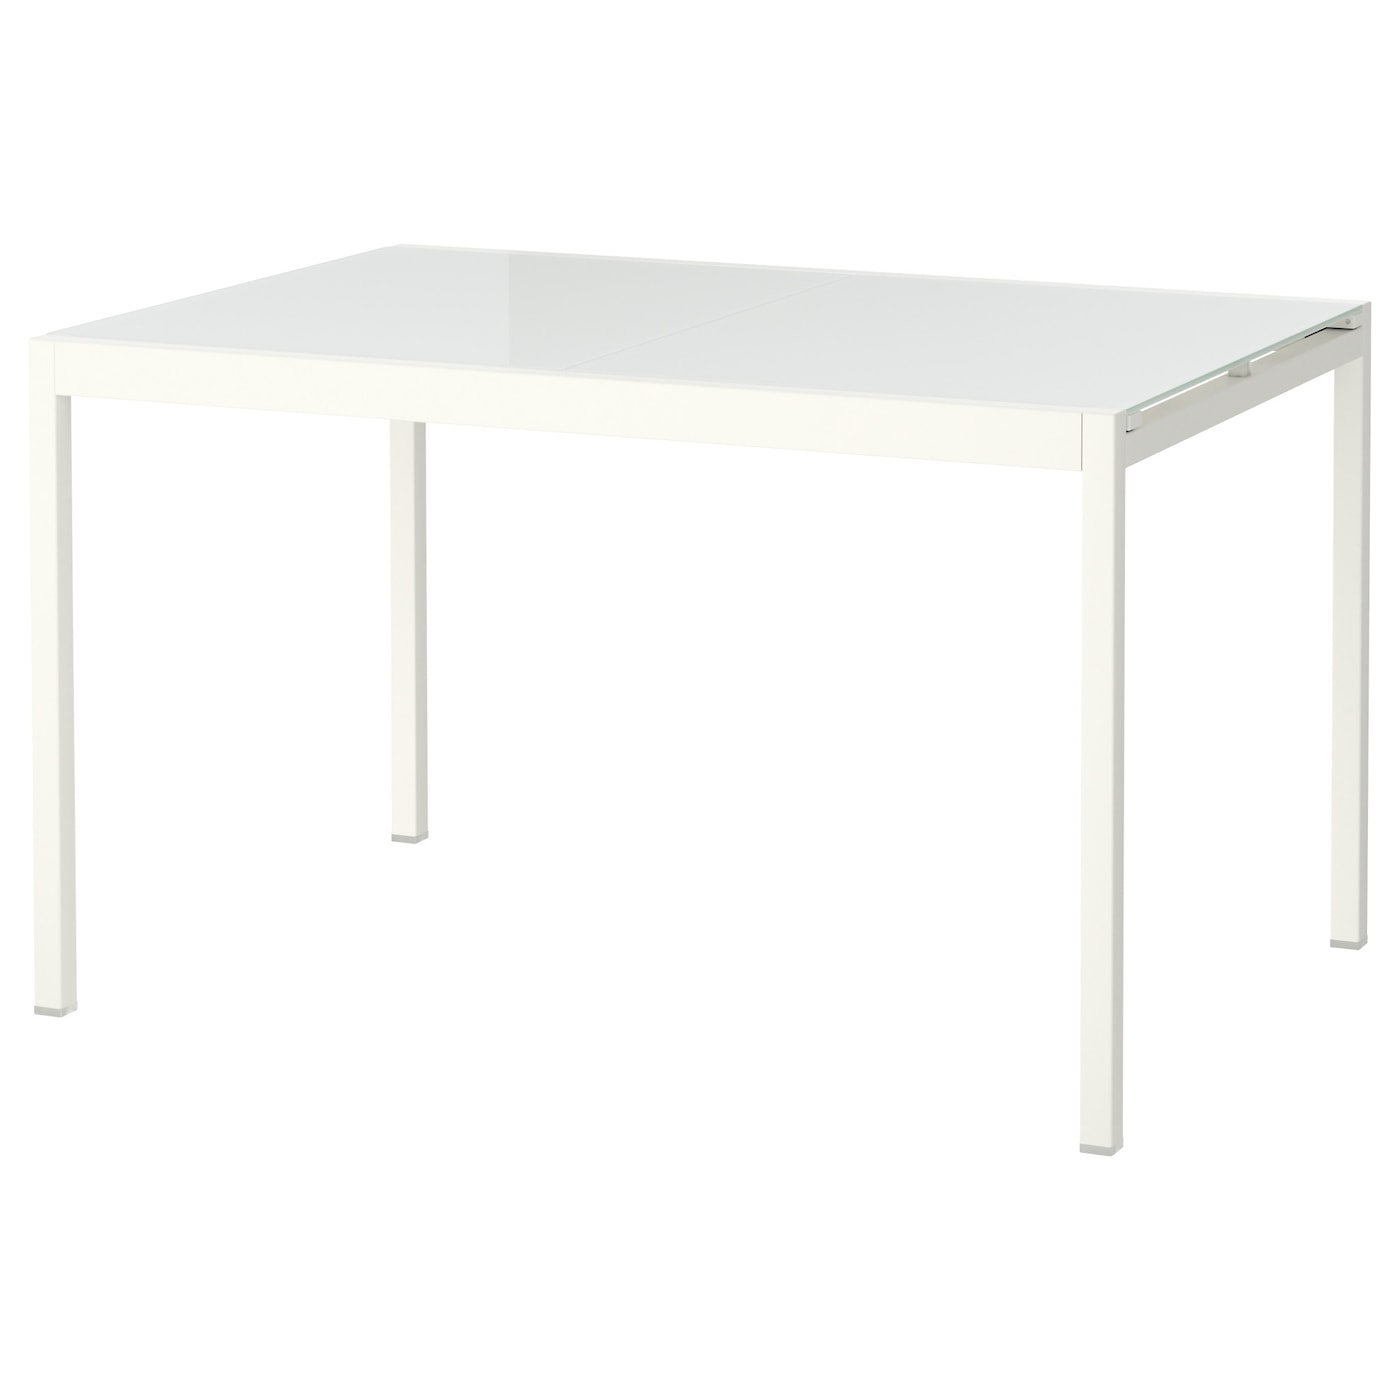 glivarp extendable table white 125 188 x 85 cm ikea. Black Bedroom Furniture Sets. Home Design Ideas